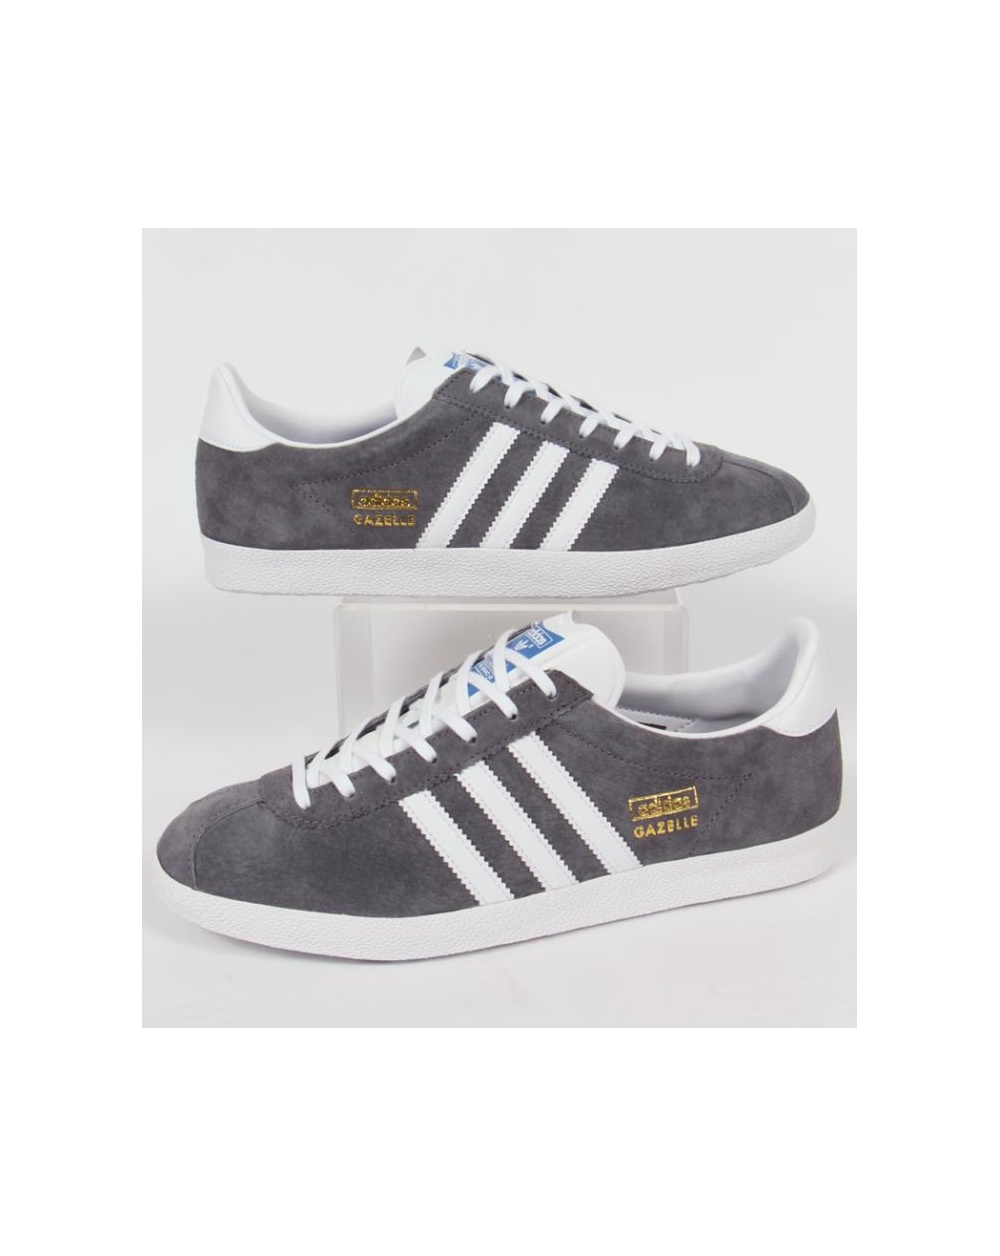 Adidas Gazelle Black And White Size 5